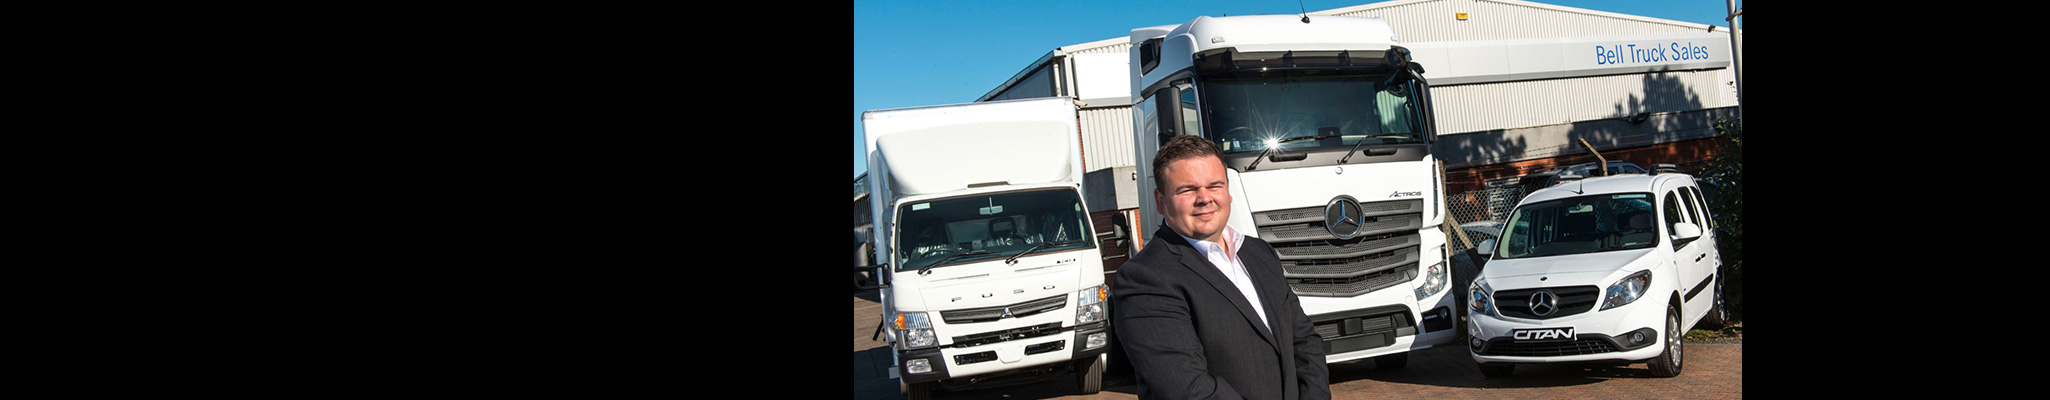 A new era dawns for Bell Truck and Van